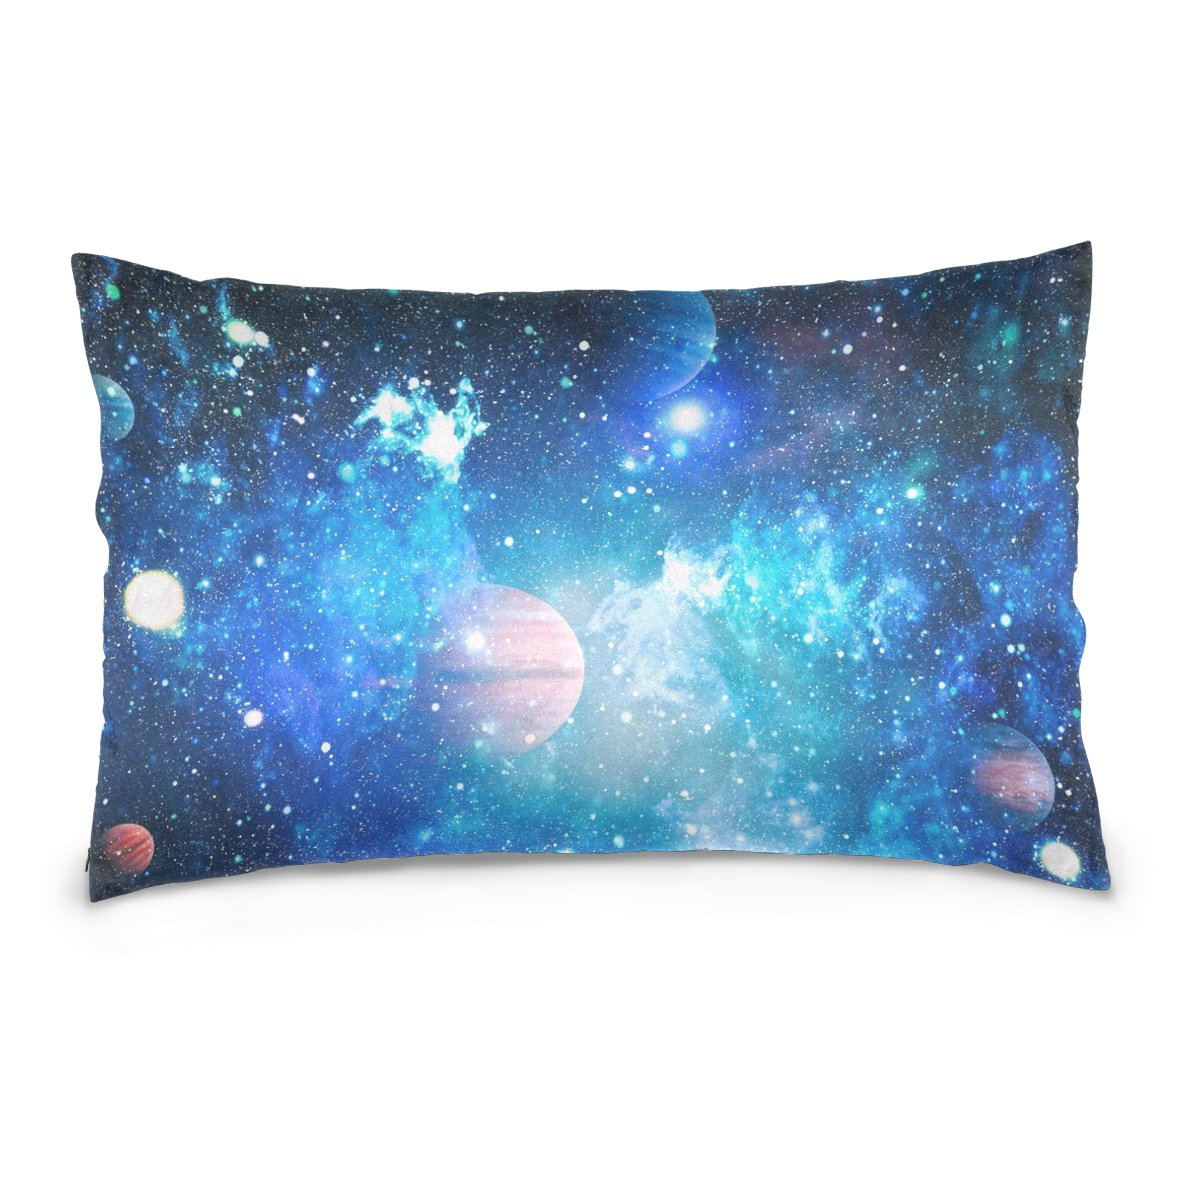 ALAZA Blue Solar System Planet Cotton Lint Pillow Case,Double-sided Printing Home Decor Pillowcase Size 16''x24'',for Bedroom Women Girl Boy